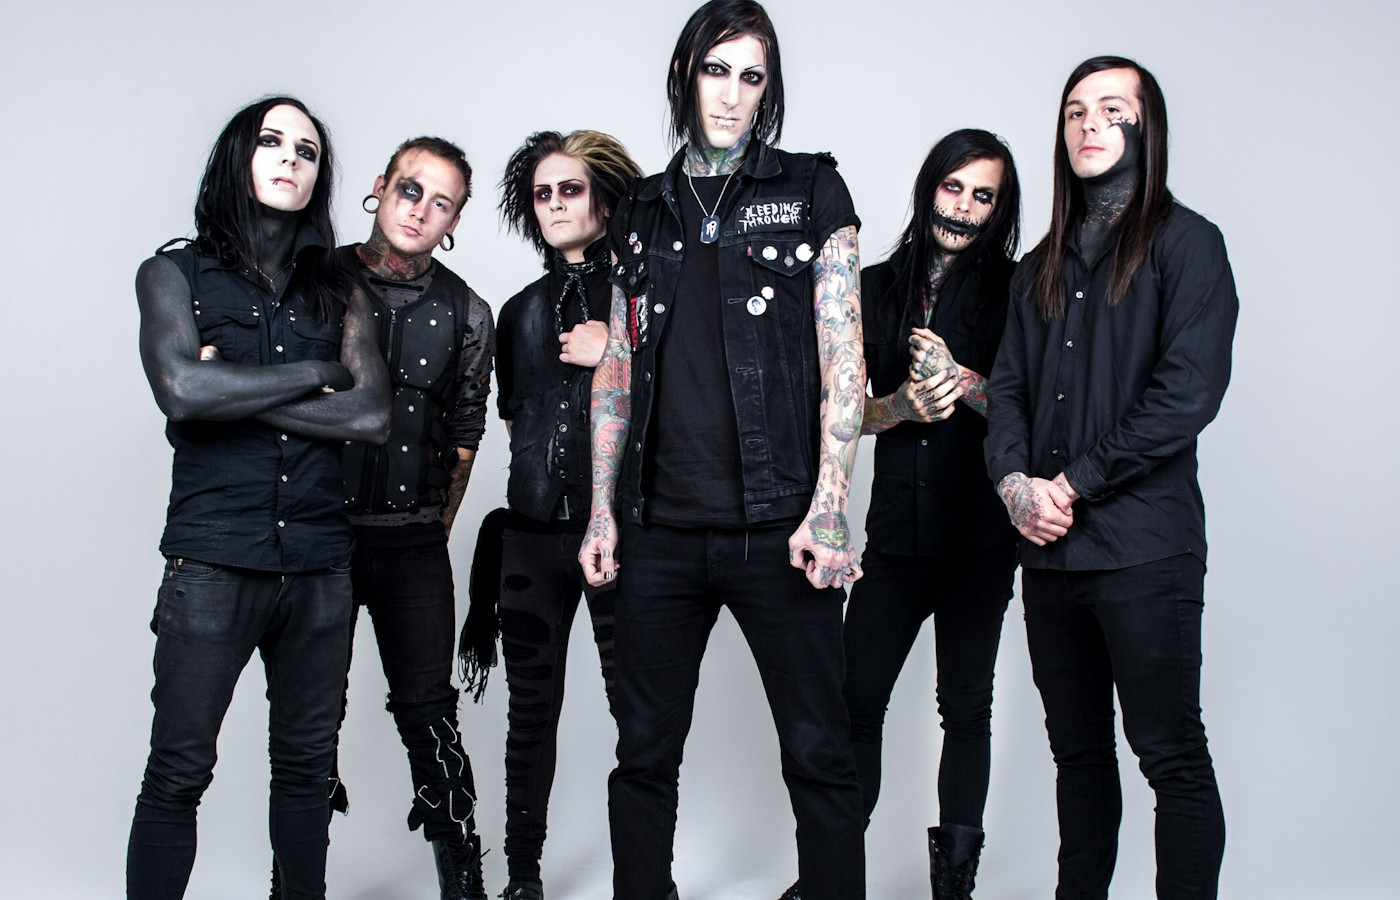 Wallpapers For Motionless In White Wallpaper 1920x1080 1400x900